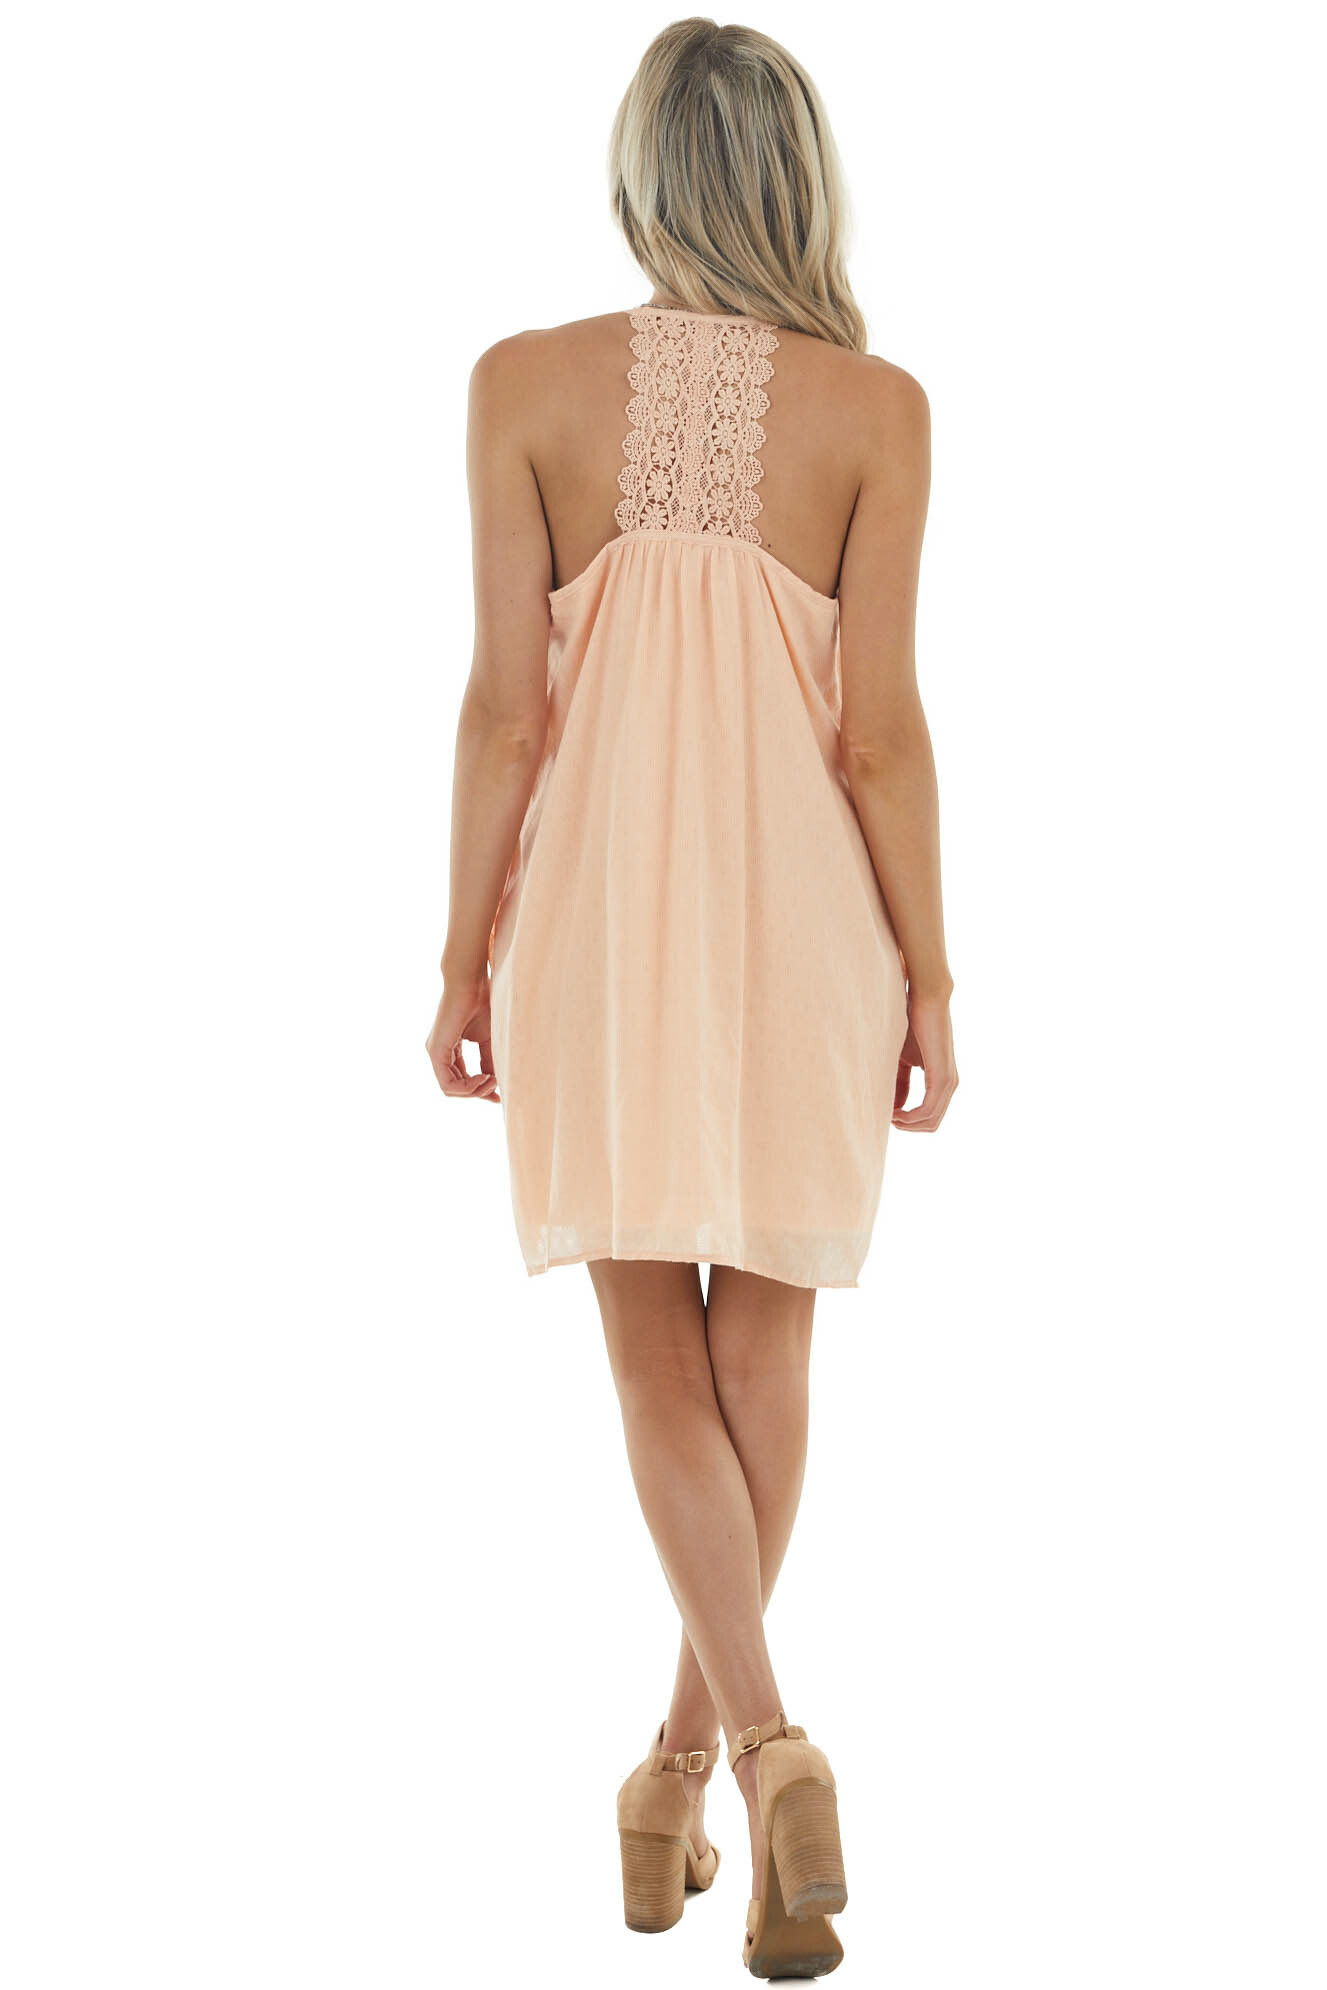 Peach Woven Sleeveless Short Dress with Lace Details